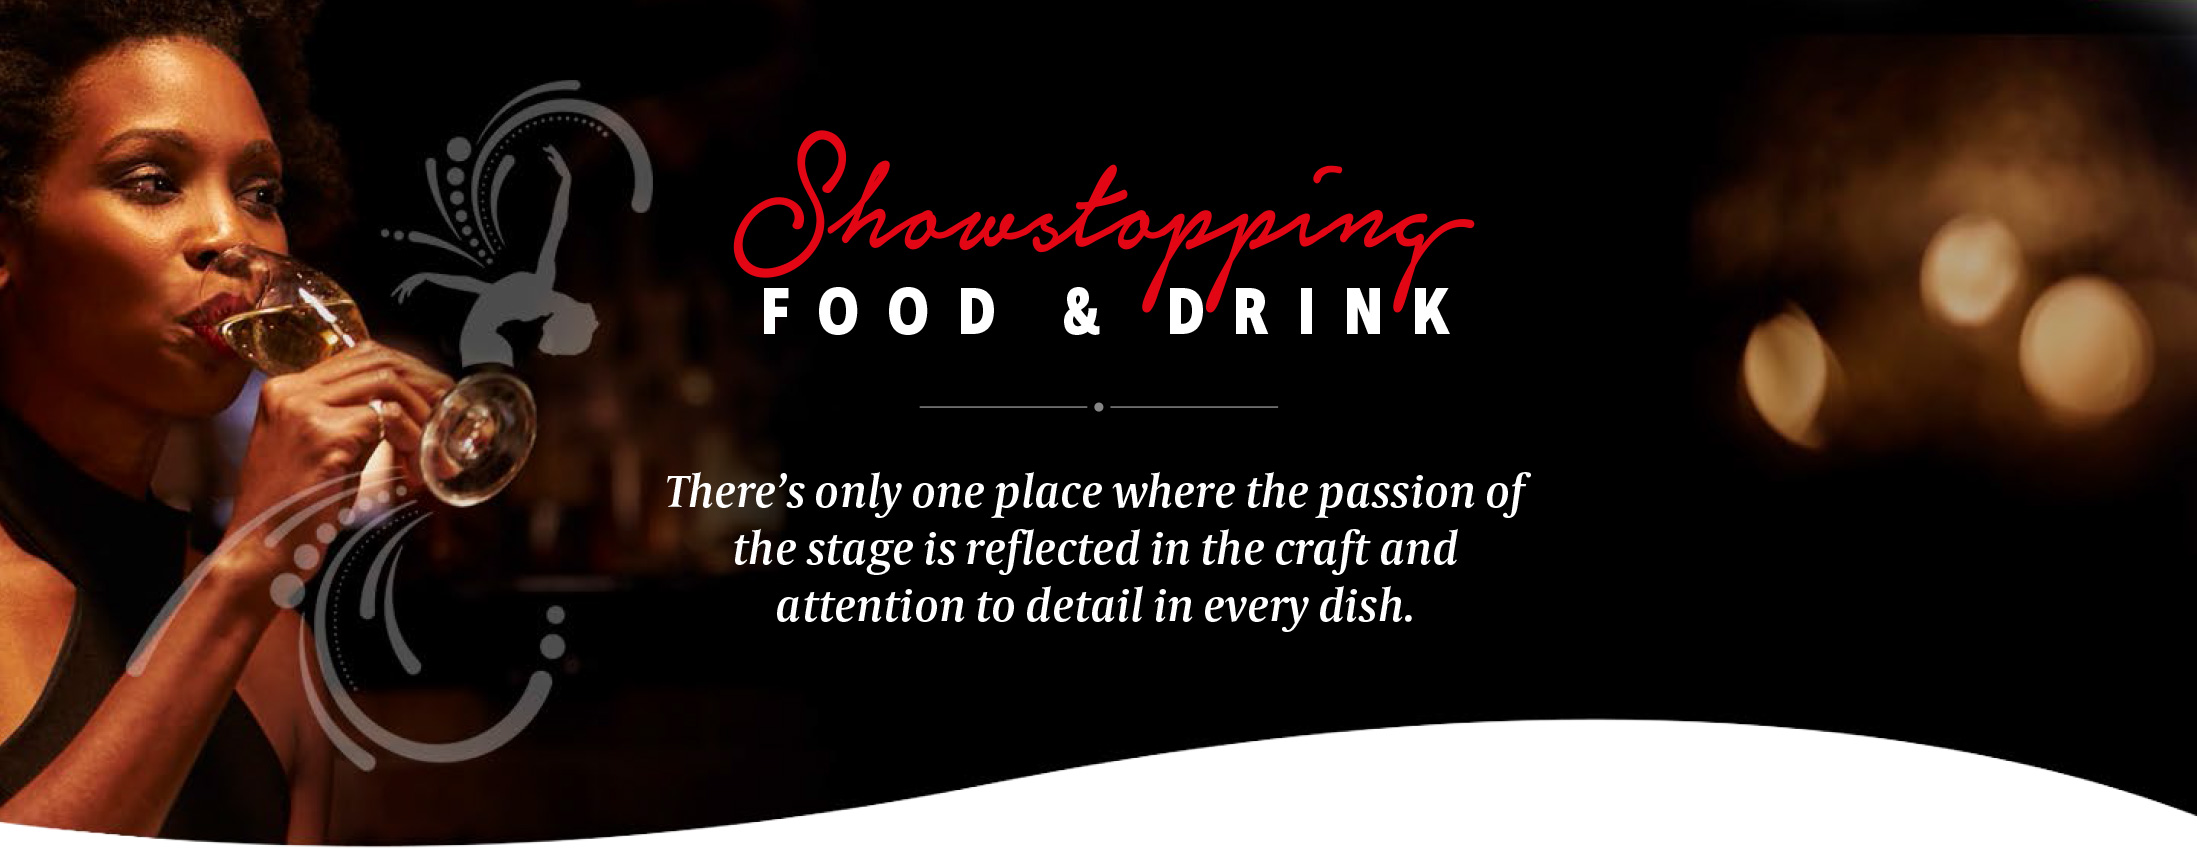 Showstopping Food & Drink